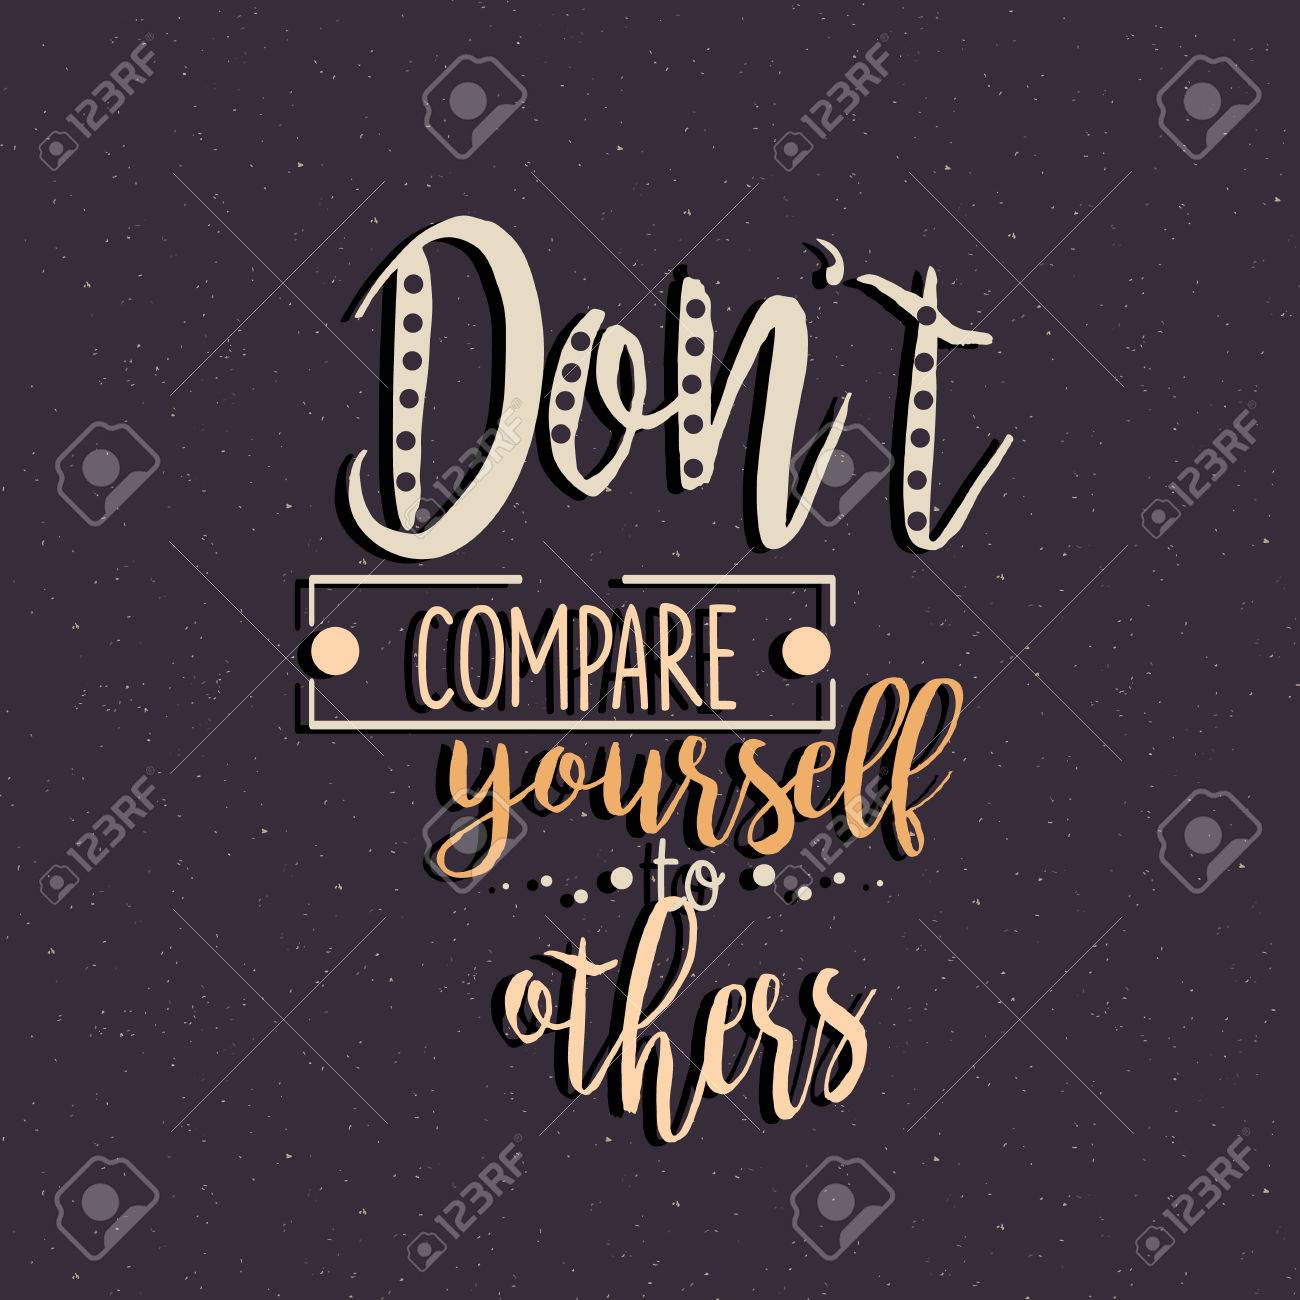 Compare Quotes Don't Compare Yourself To Others Quotes Motivation Vector Royalty